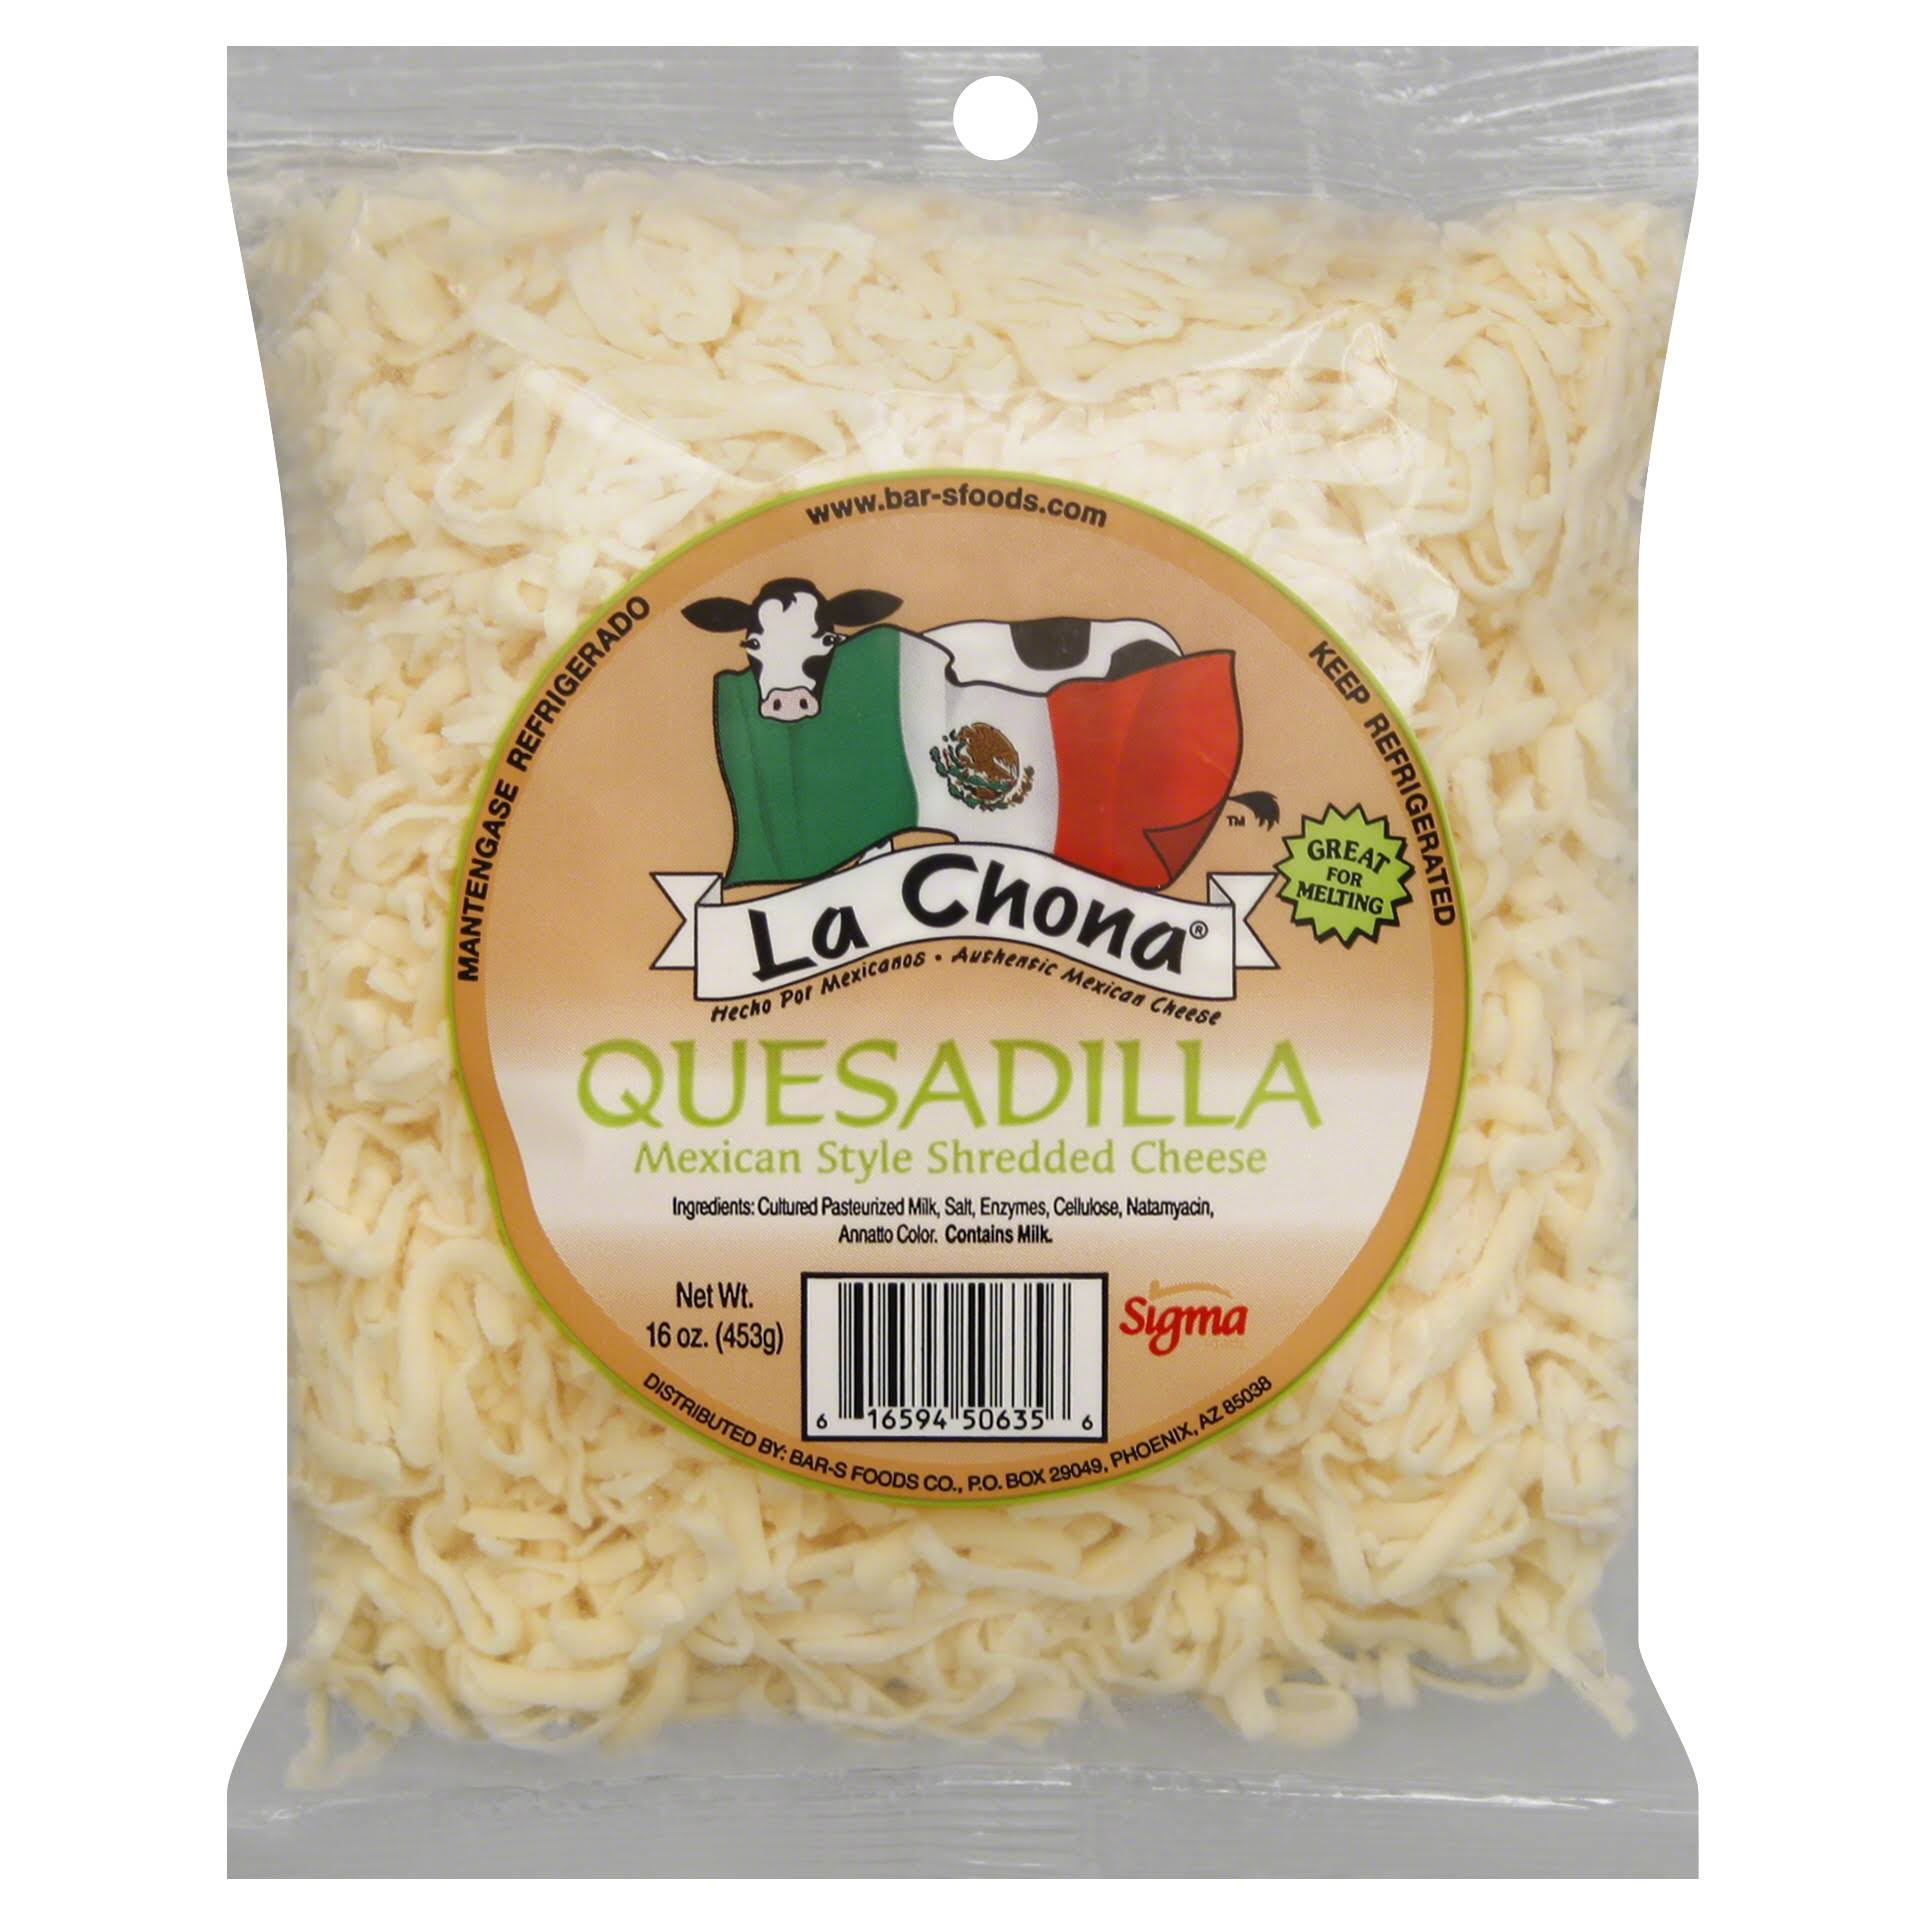 La Chona Mexican Style Shredded Cheese Quesadilla - 16oz